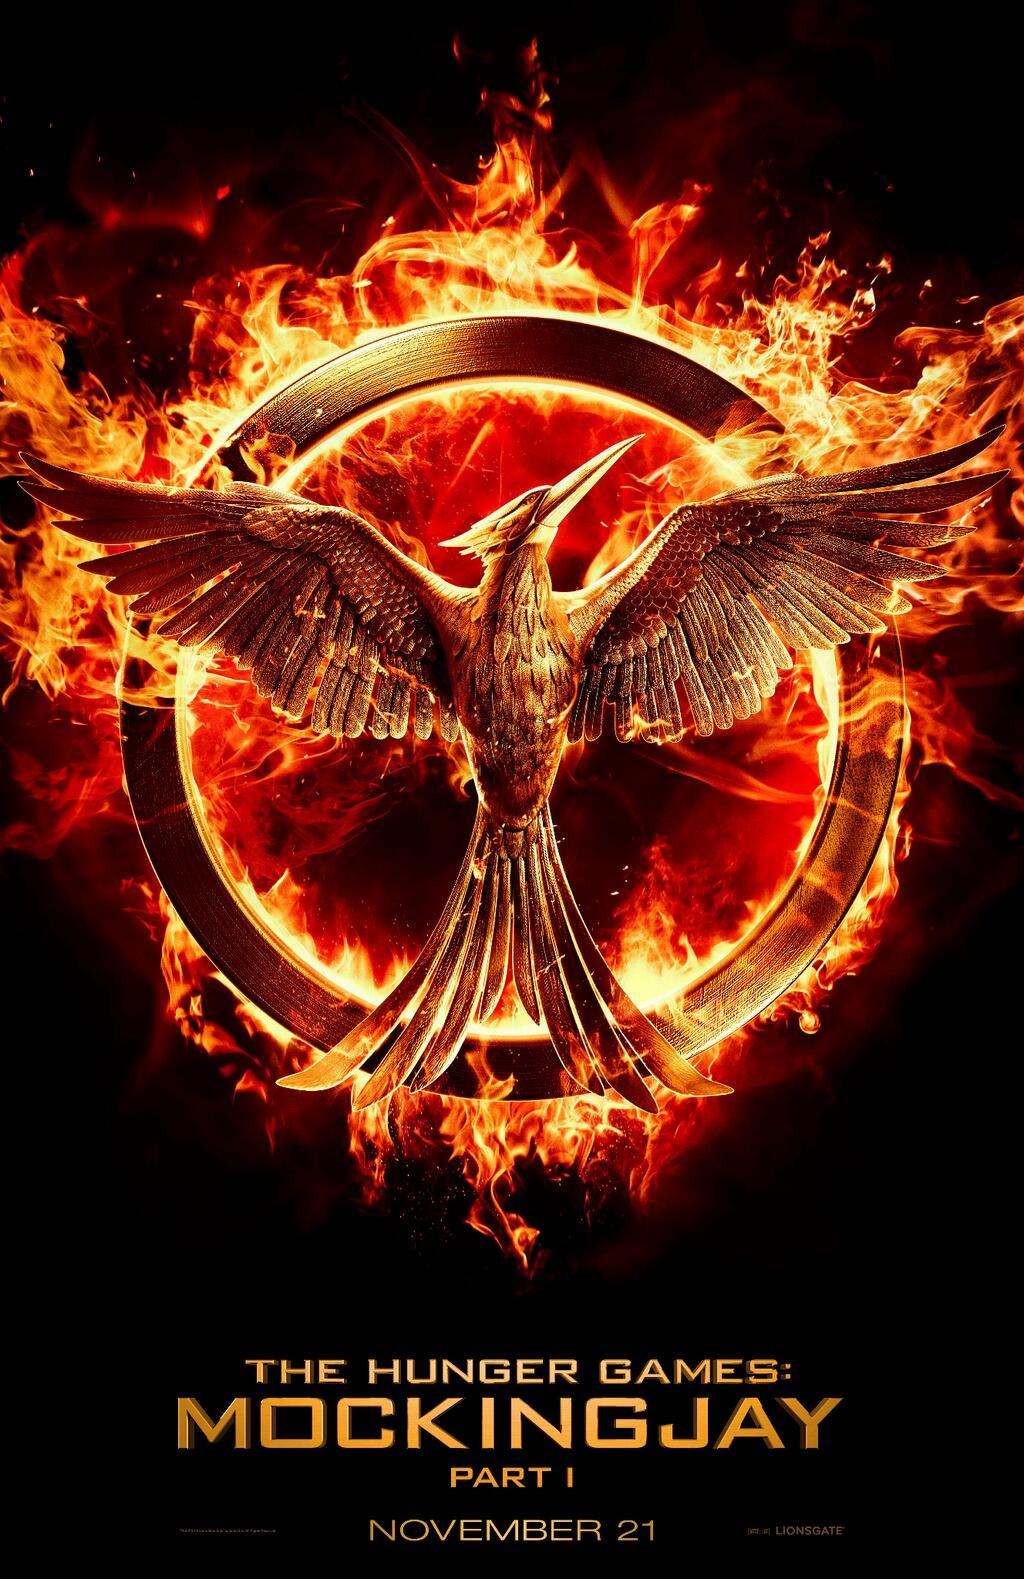 hunger games mockingjay  part 1 movie posters at movie